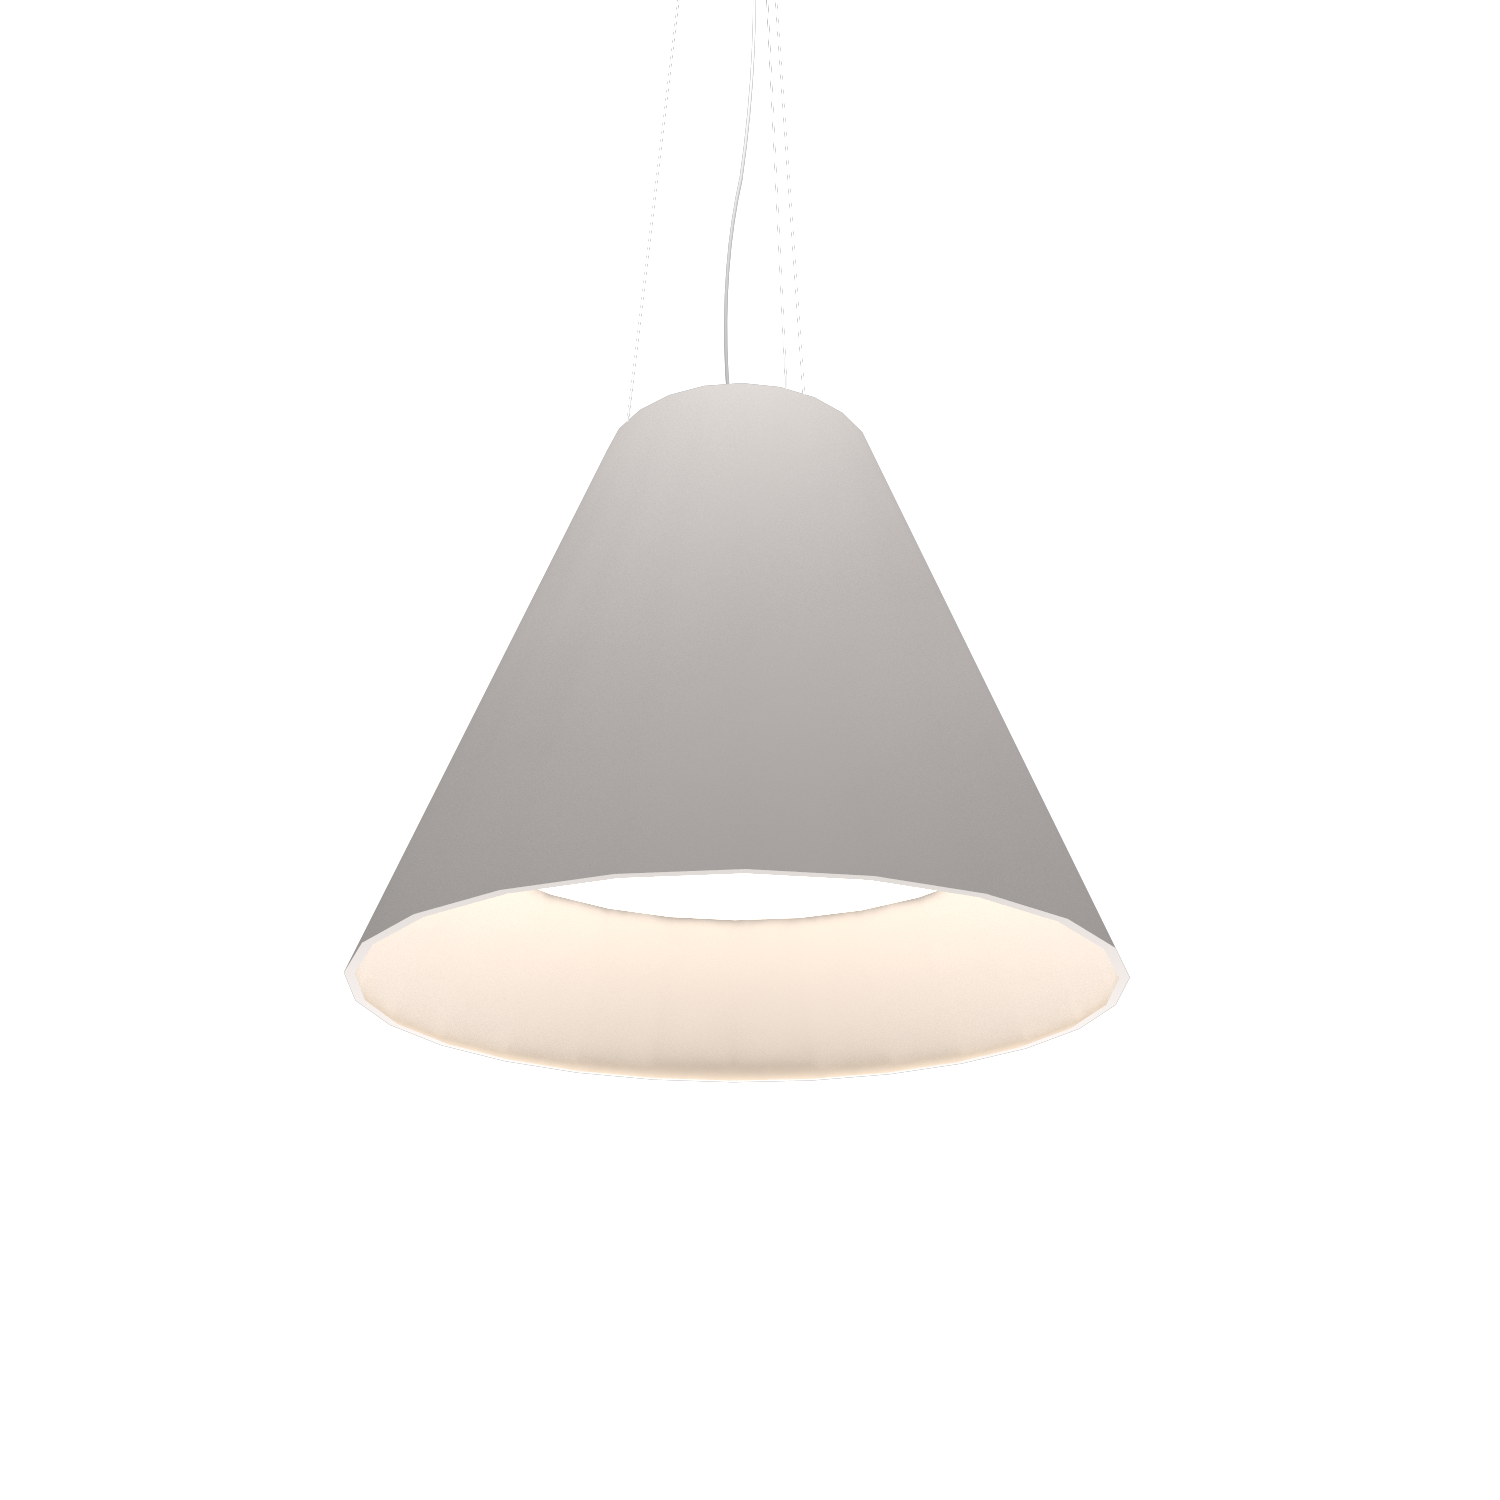 Pendant Lamp Accord Cônico 295 - Cônica Line Accord Lighting | 25. Iredescent White